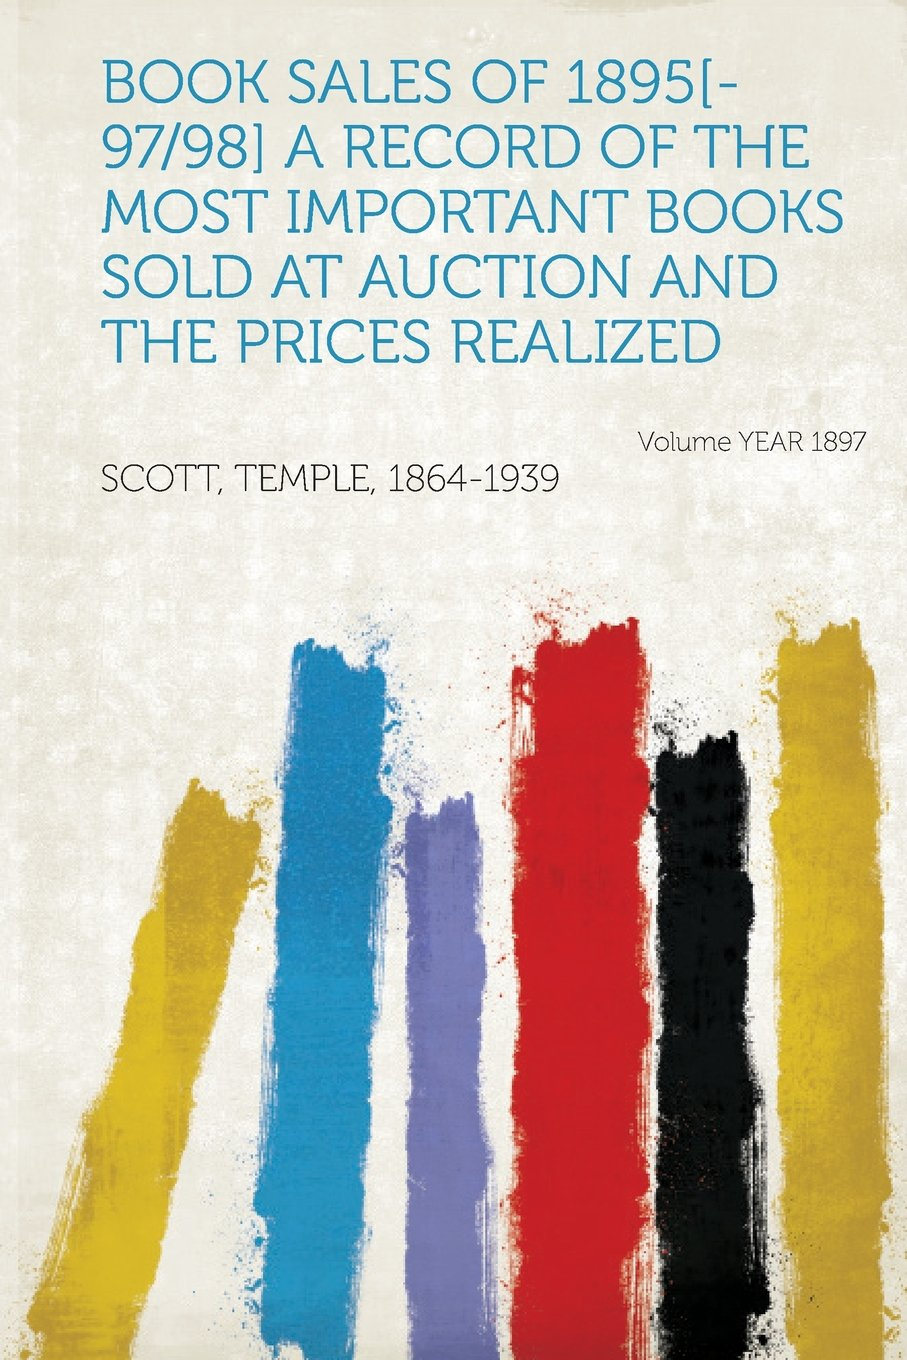 Book Sales of 1895[-97/98] a Record of the Most Important Books Sold at Auction and the Prices Realized Volume Year 1897 ebook